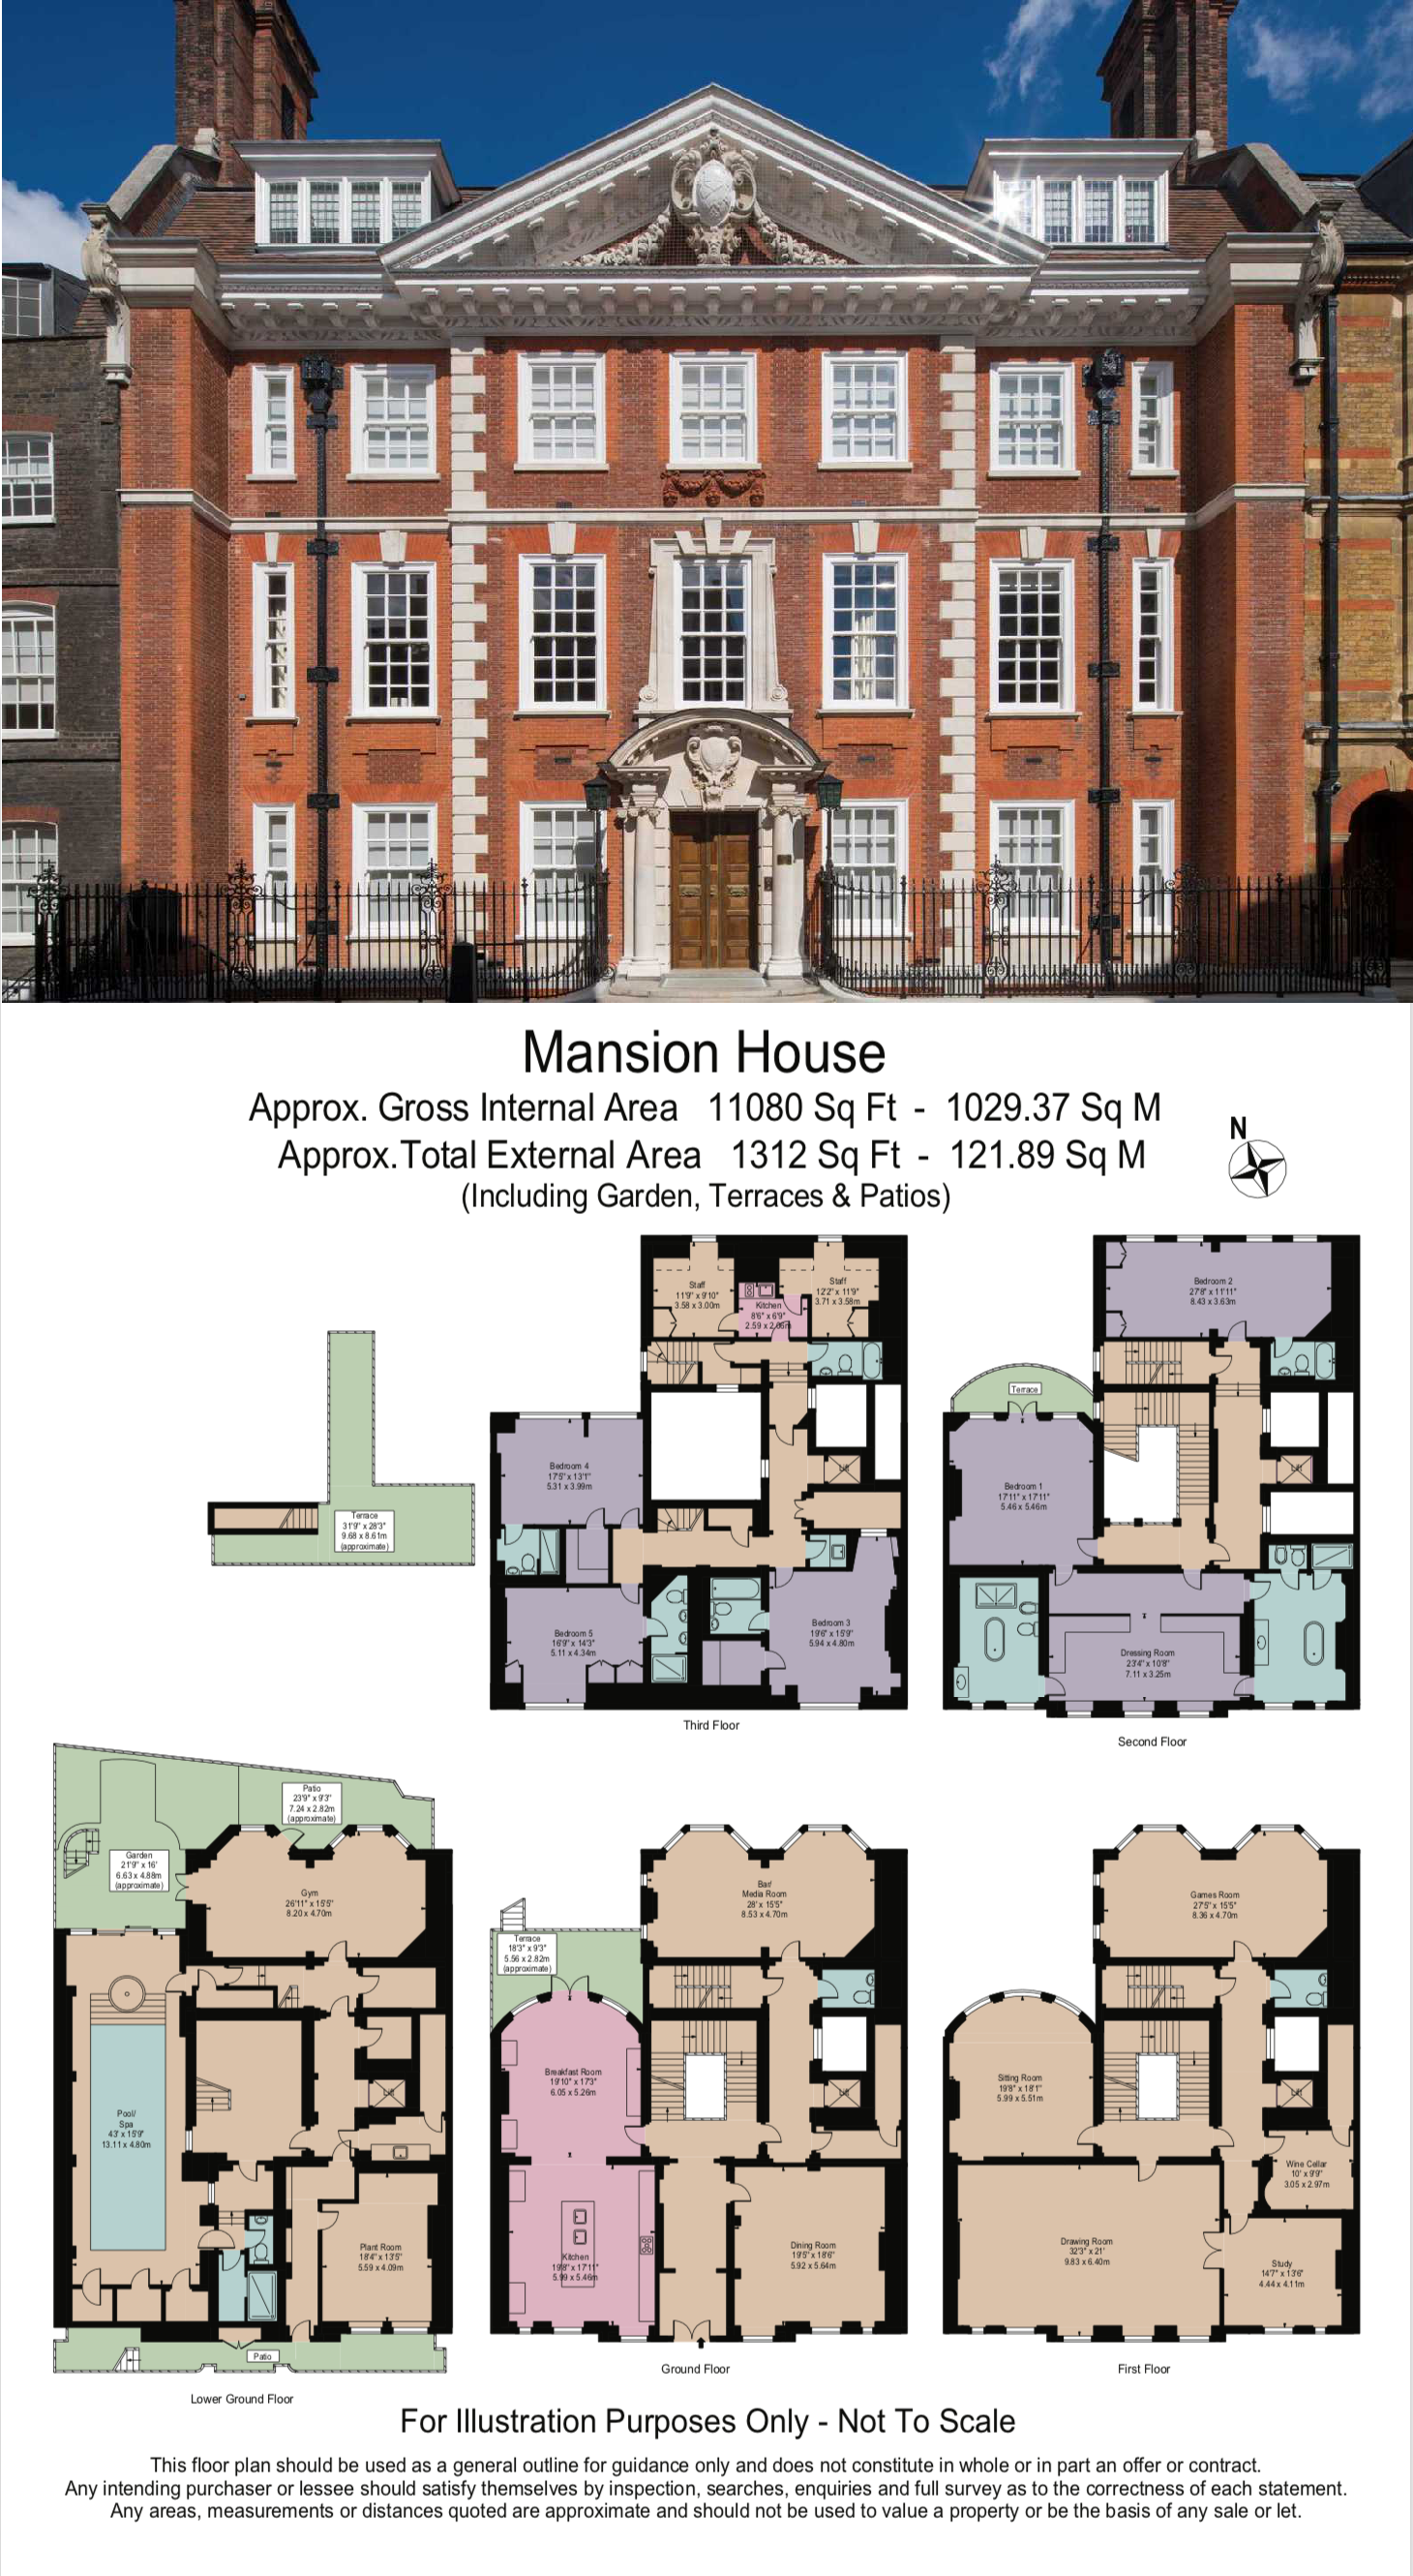 7 Bedroom Property For Sale In Mansion House Westminster Sw1p 29 950 000 House Plans Mansion Vintage House Plans Mansion Floor Plan